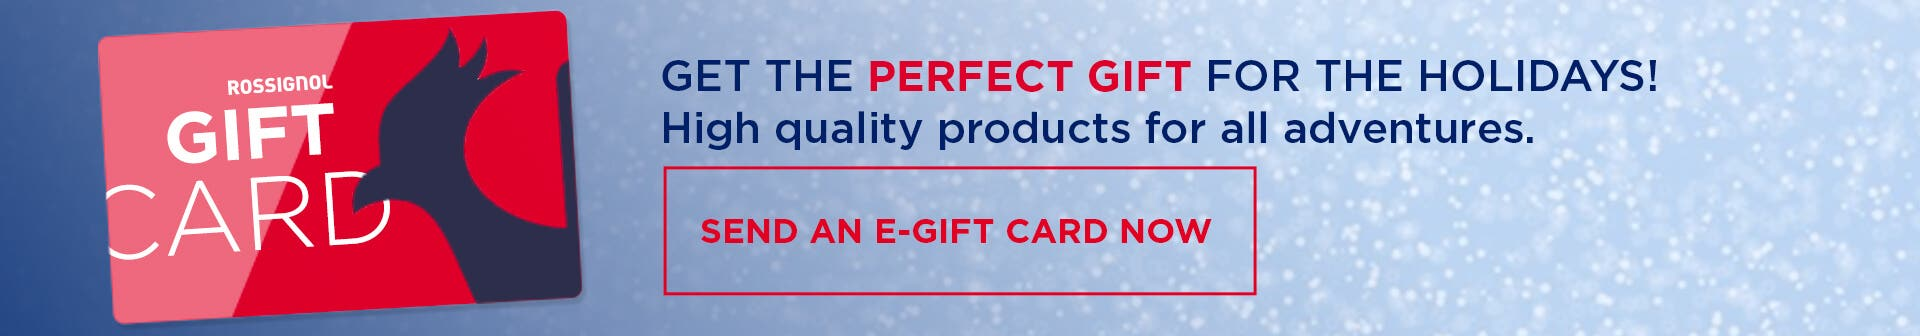 Rossignol Gift Card